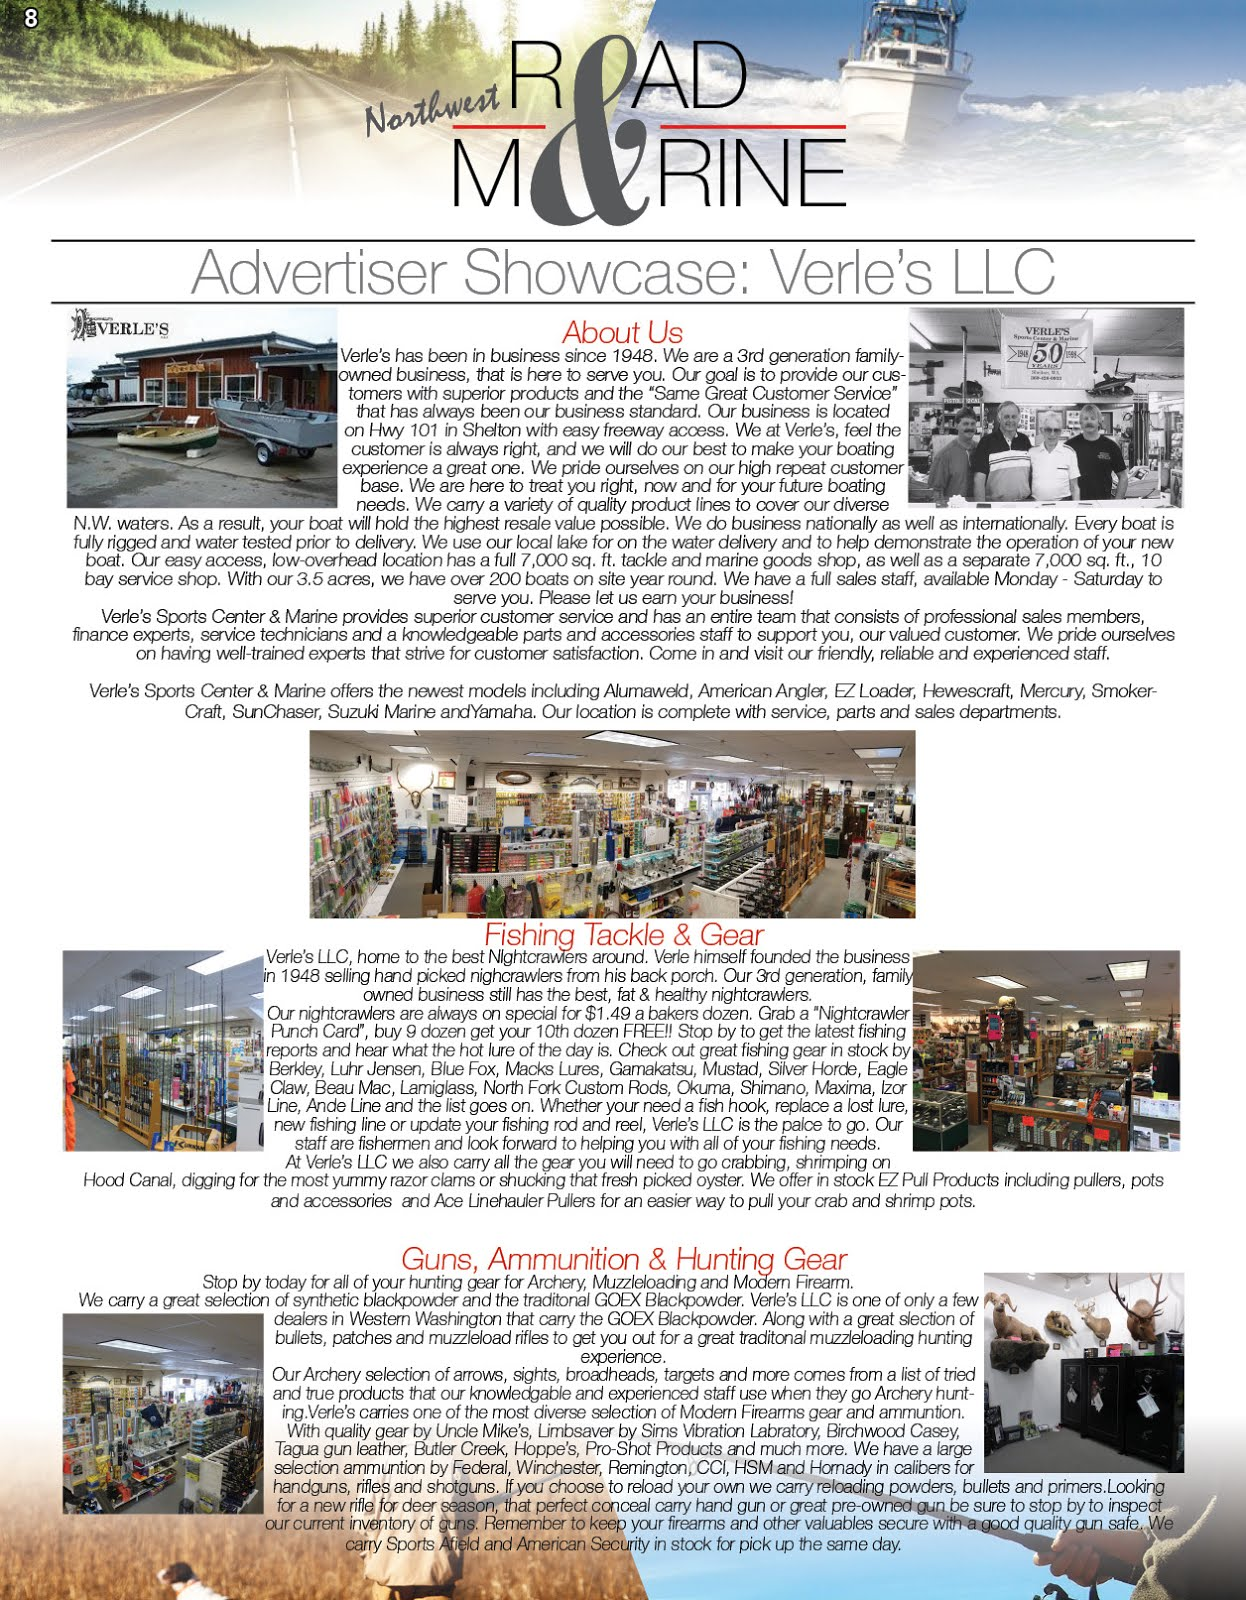 NW Road & Marine Advertiser Showcase: Verles, LLC.